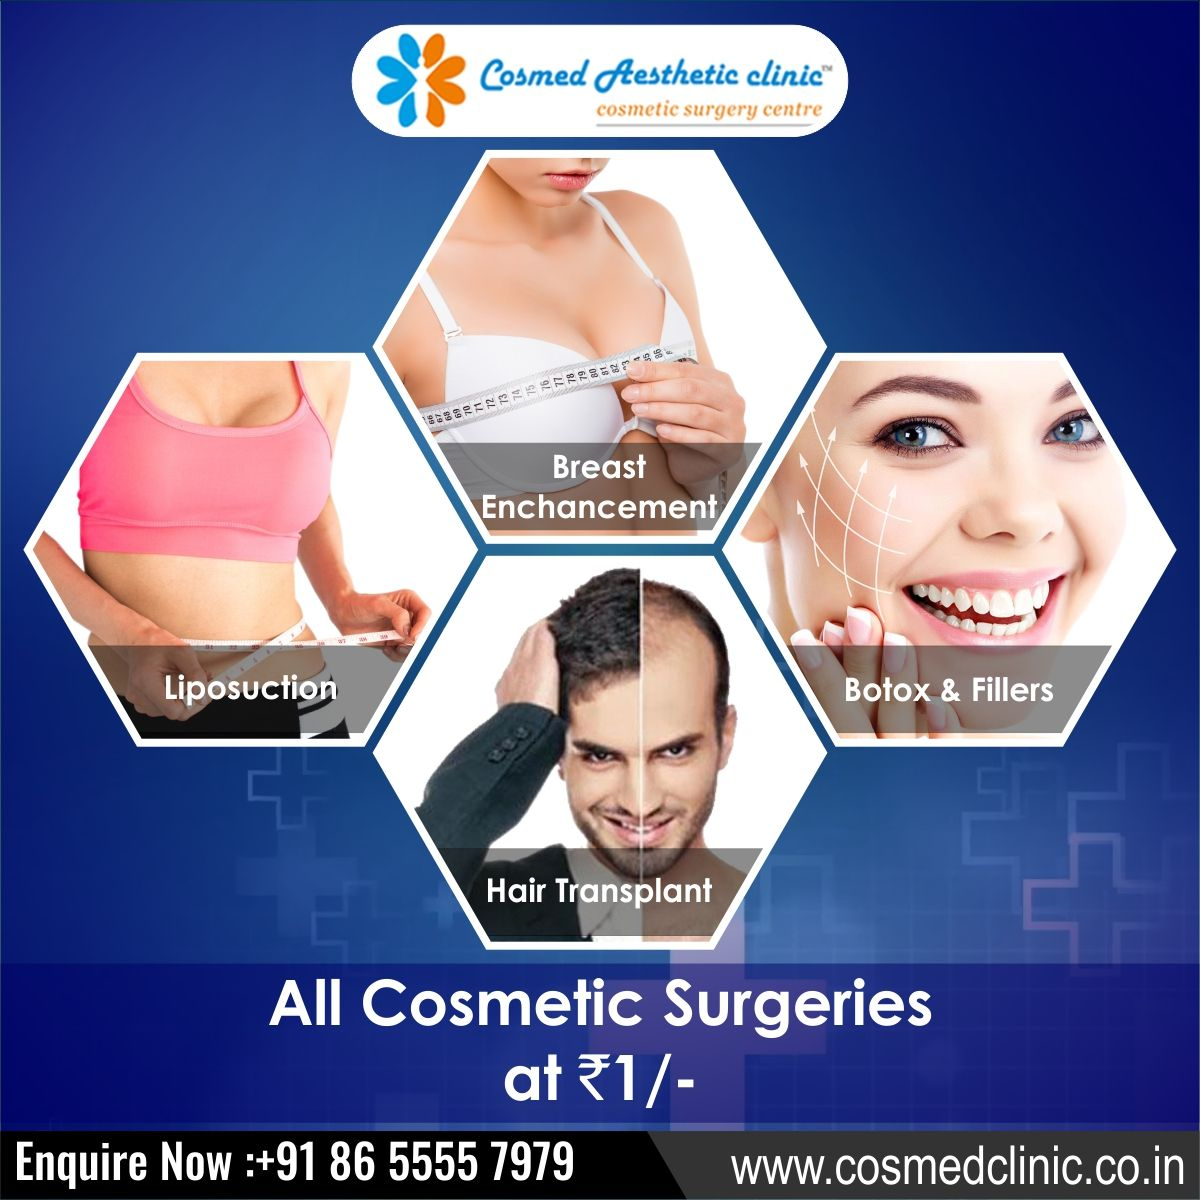 CosmedAestheticClinic is one of the Latest & Advance